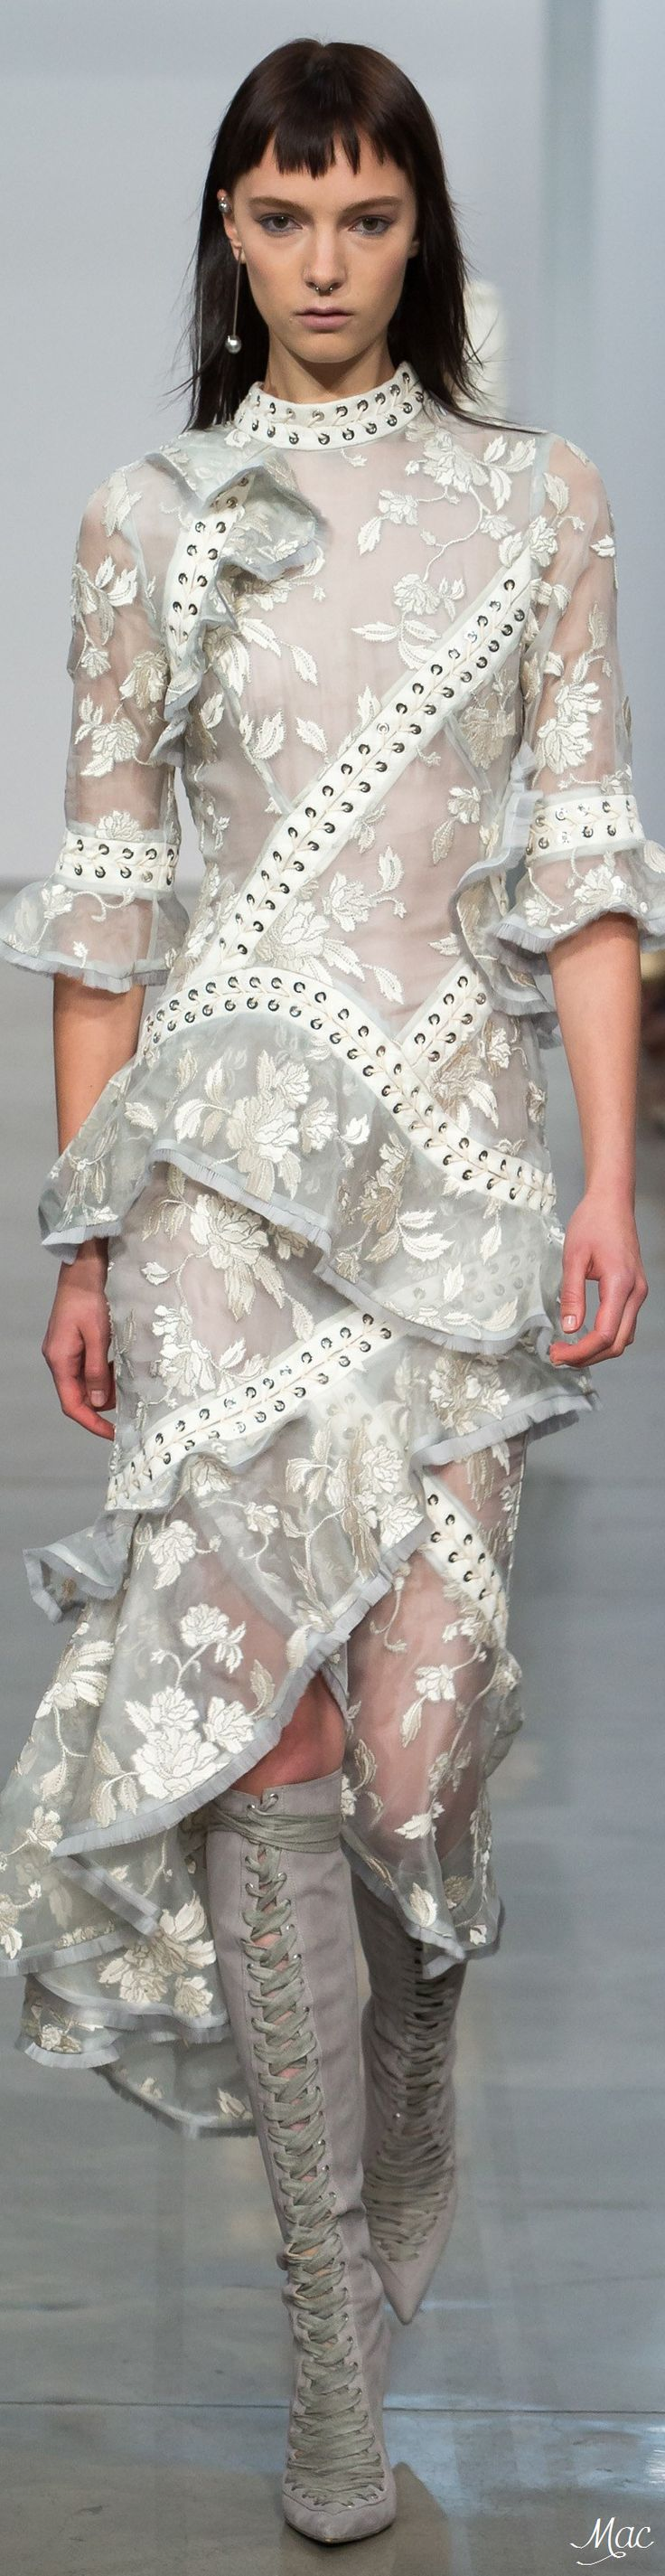 Spring 2017 Ready-to-Wear Zimmermann ~ Prints and ruffles with a bit of edge....Corset laces~